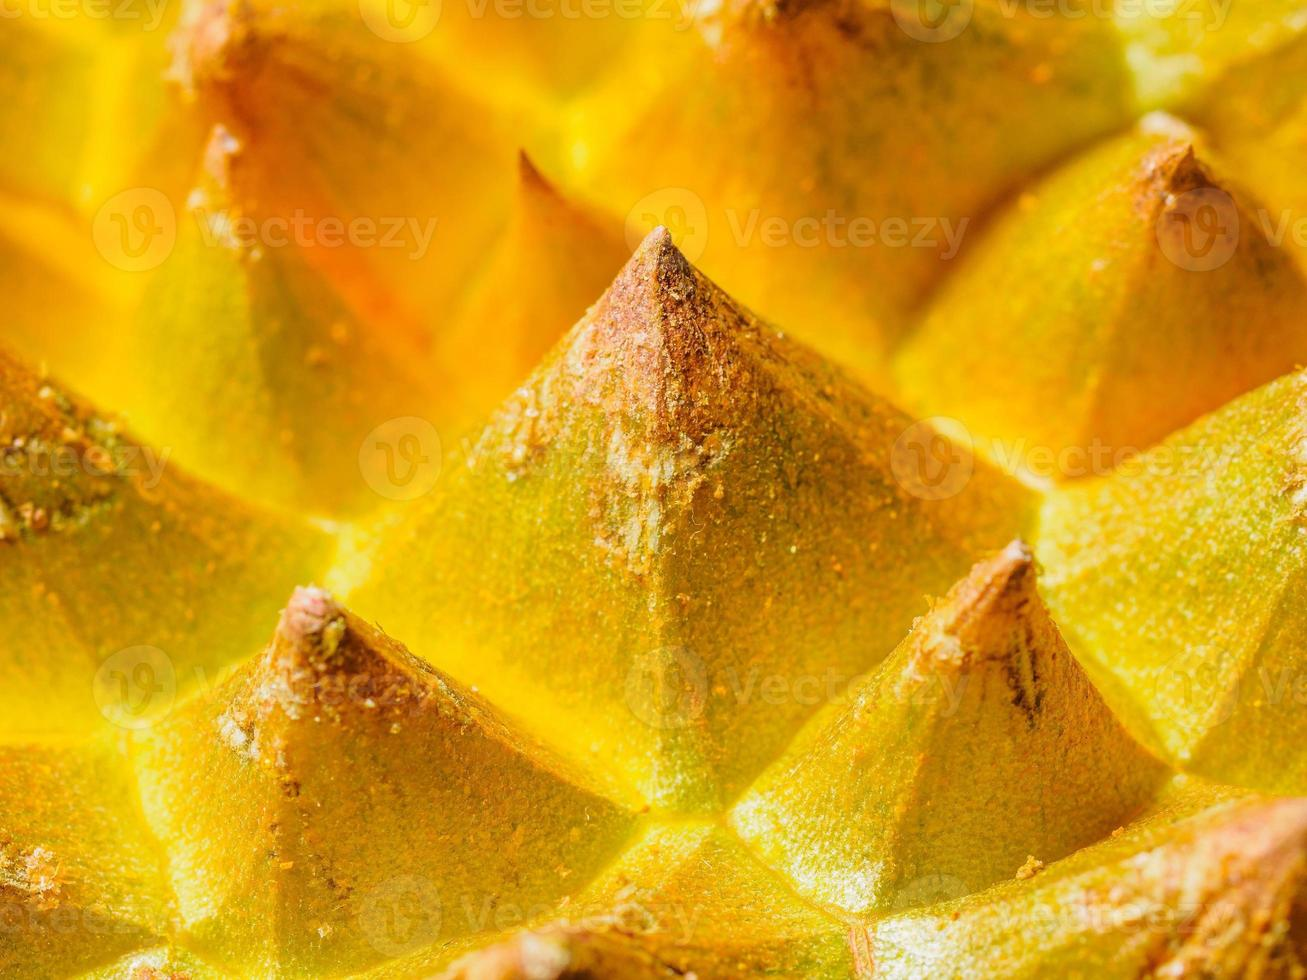 The rough skin of durian, like golden pyramid forest photo